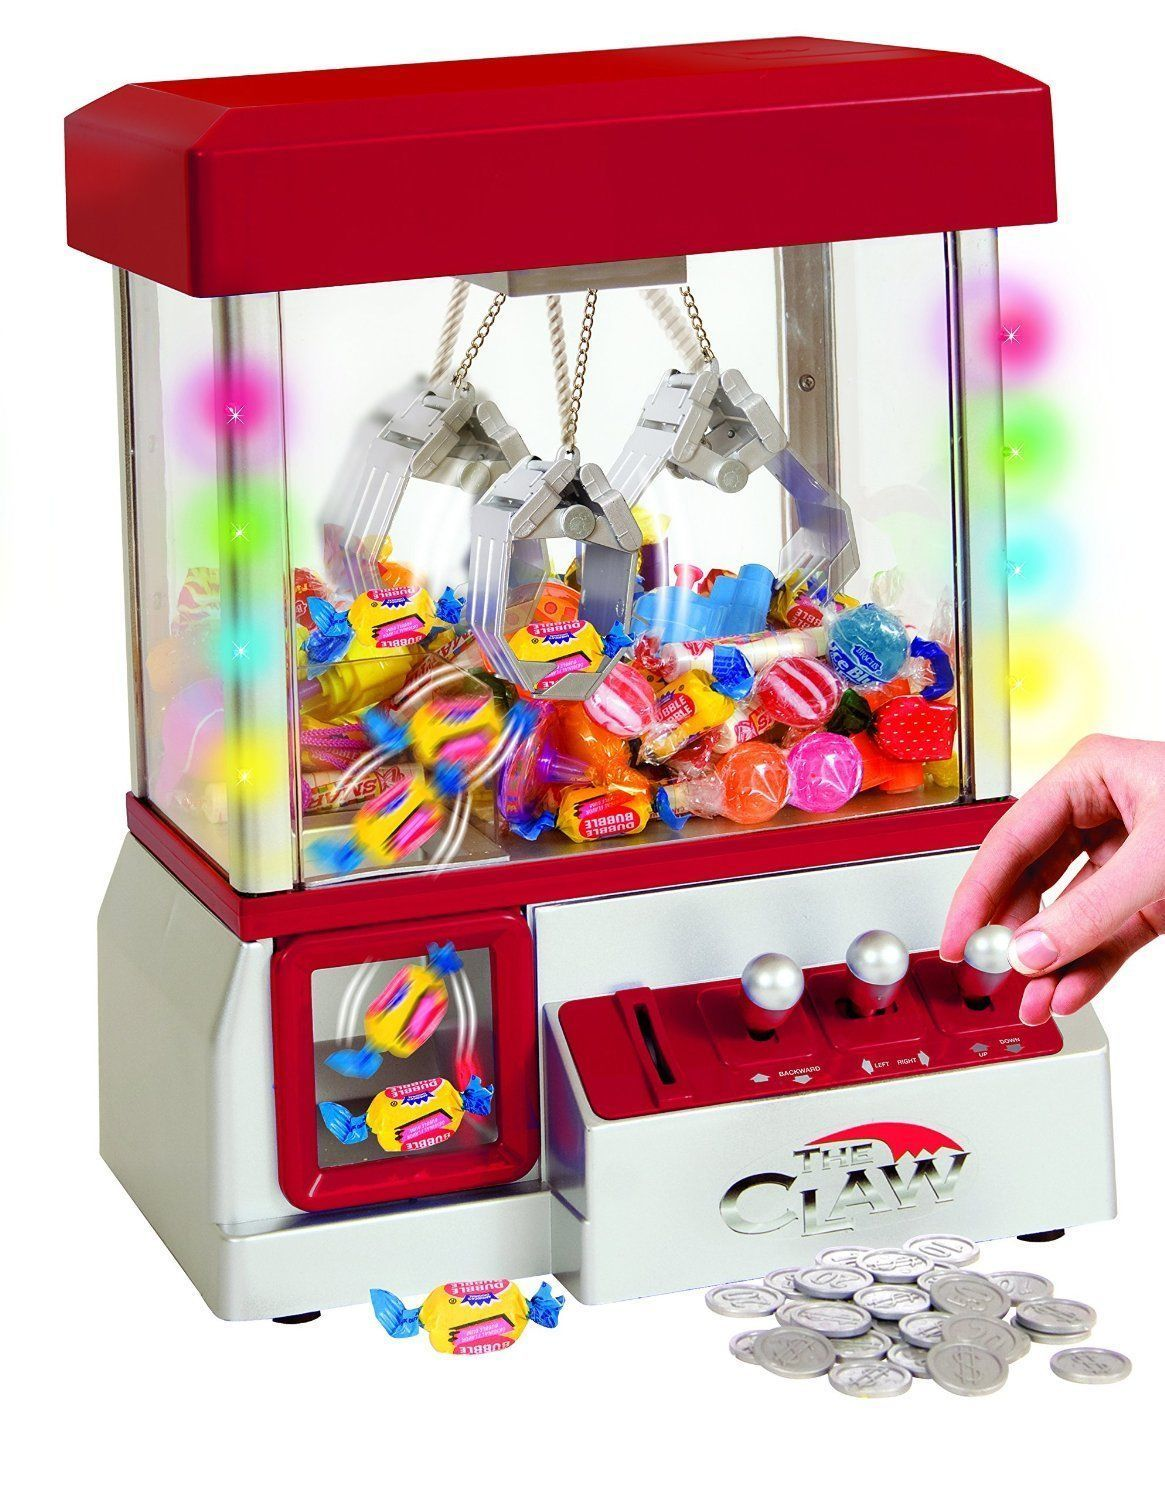 cool Digital Claw Machine LED Lights Sweet Grabber Arcade